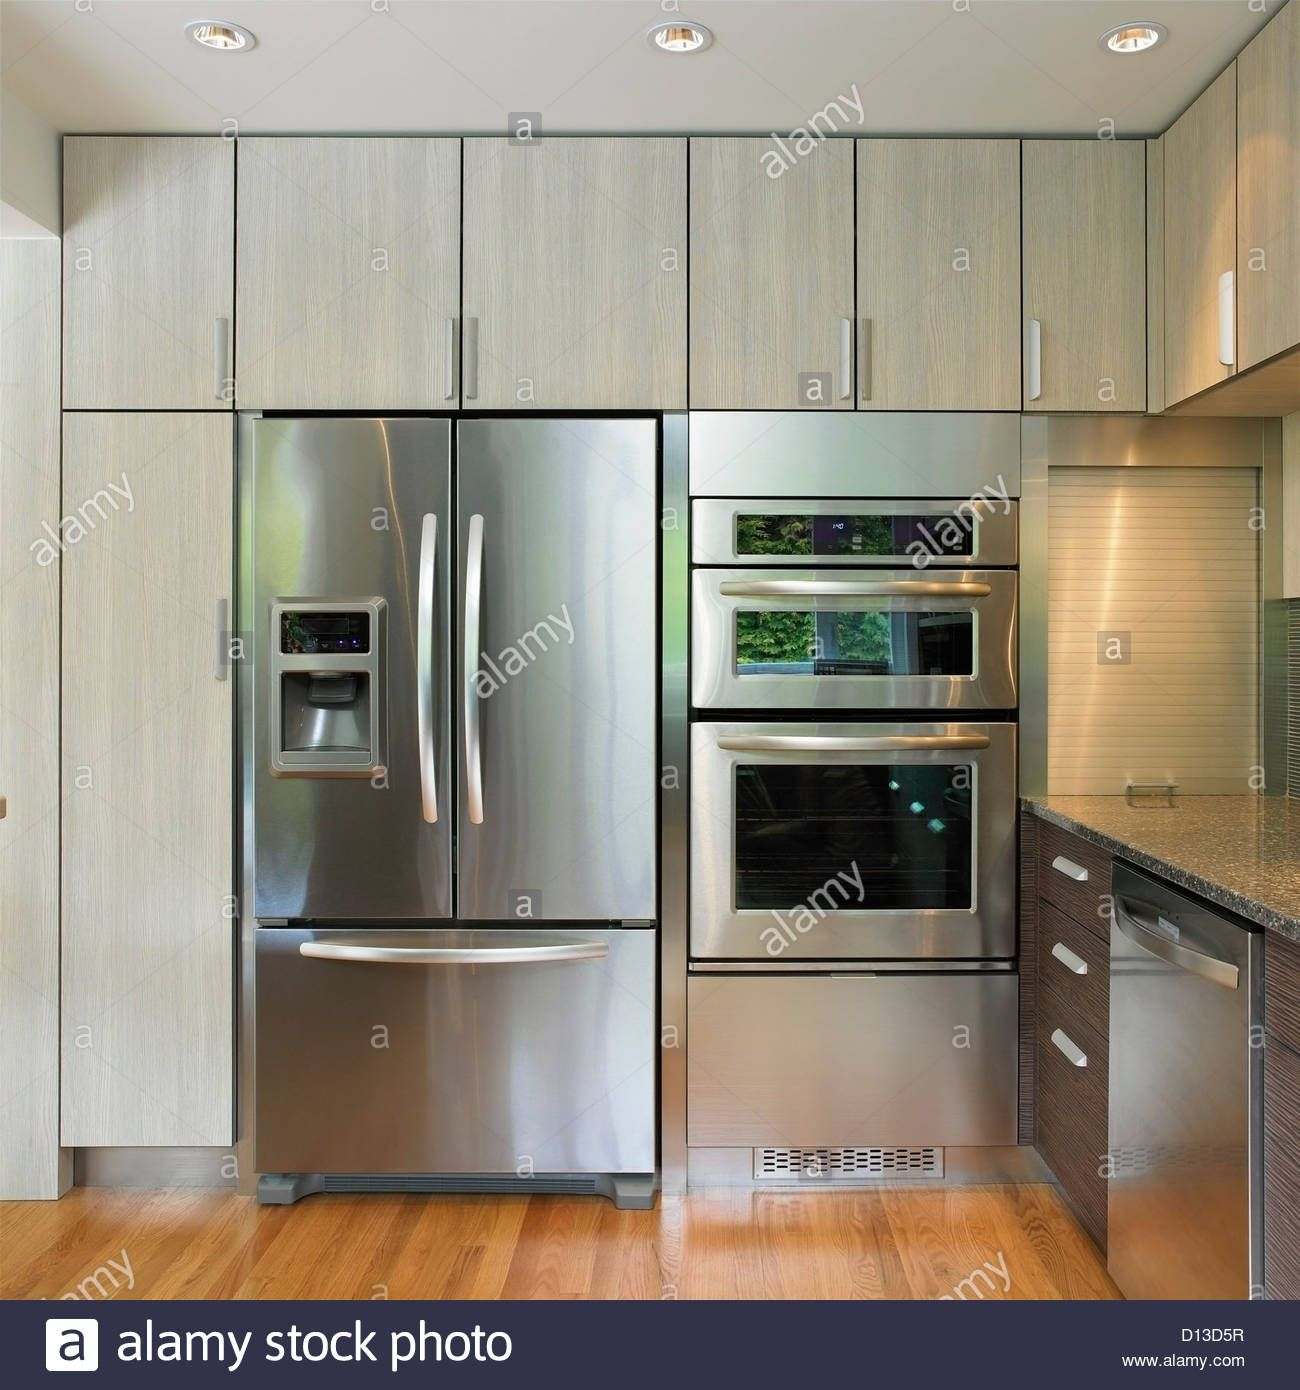 Free Picture Indoors Contemporary Stove Refrigerator: Image Result For Kitchen Built In Voens Like This Combo Of